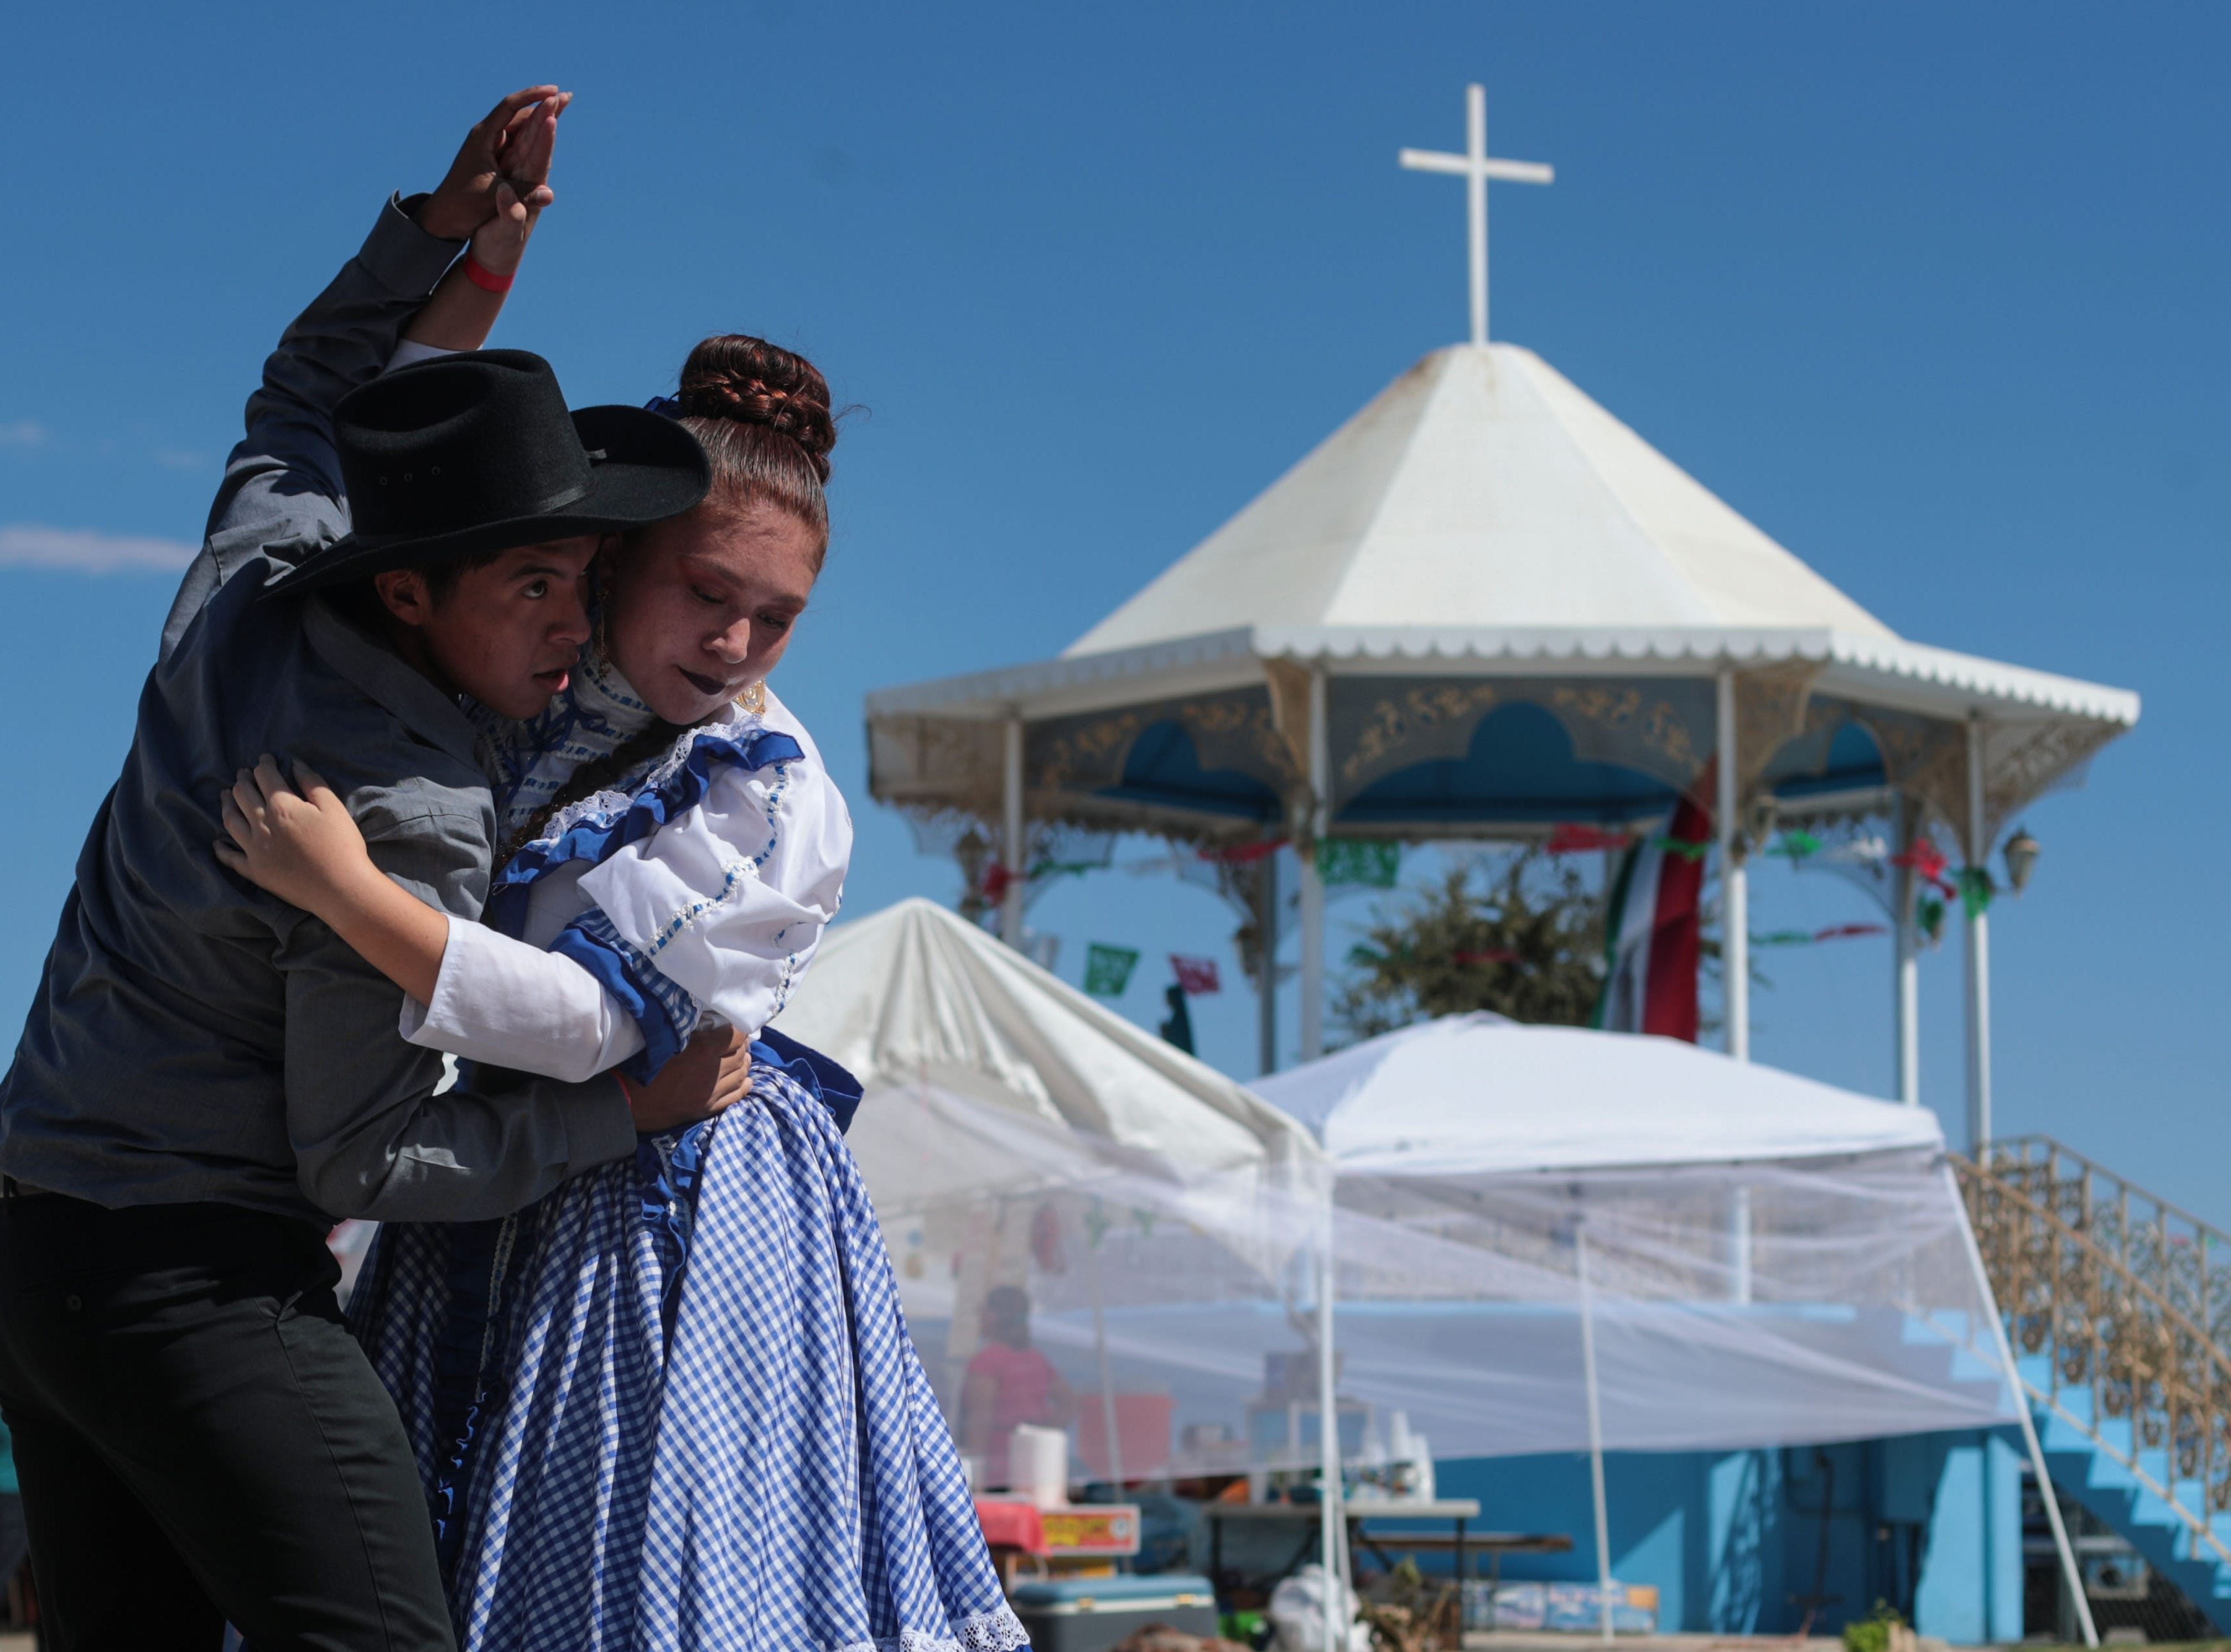 Alejandro Palomares and Blancha Almada from Desert Mirage High School dance at the Mexican independence day celebration at Our Virgin of Guadalupe Church in Mecca on Saturday, September 15, 2018.